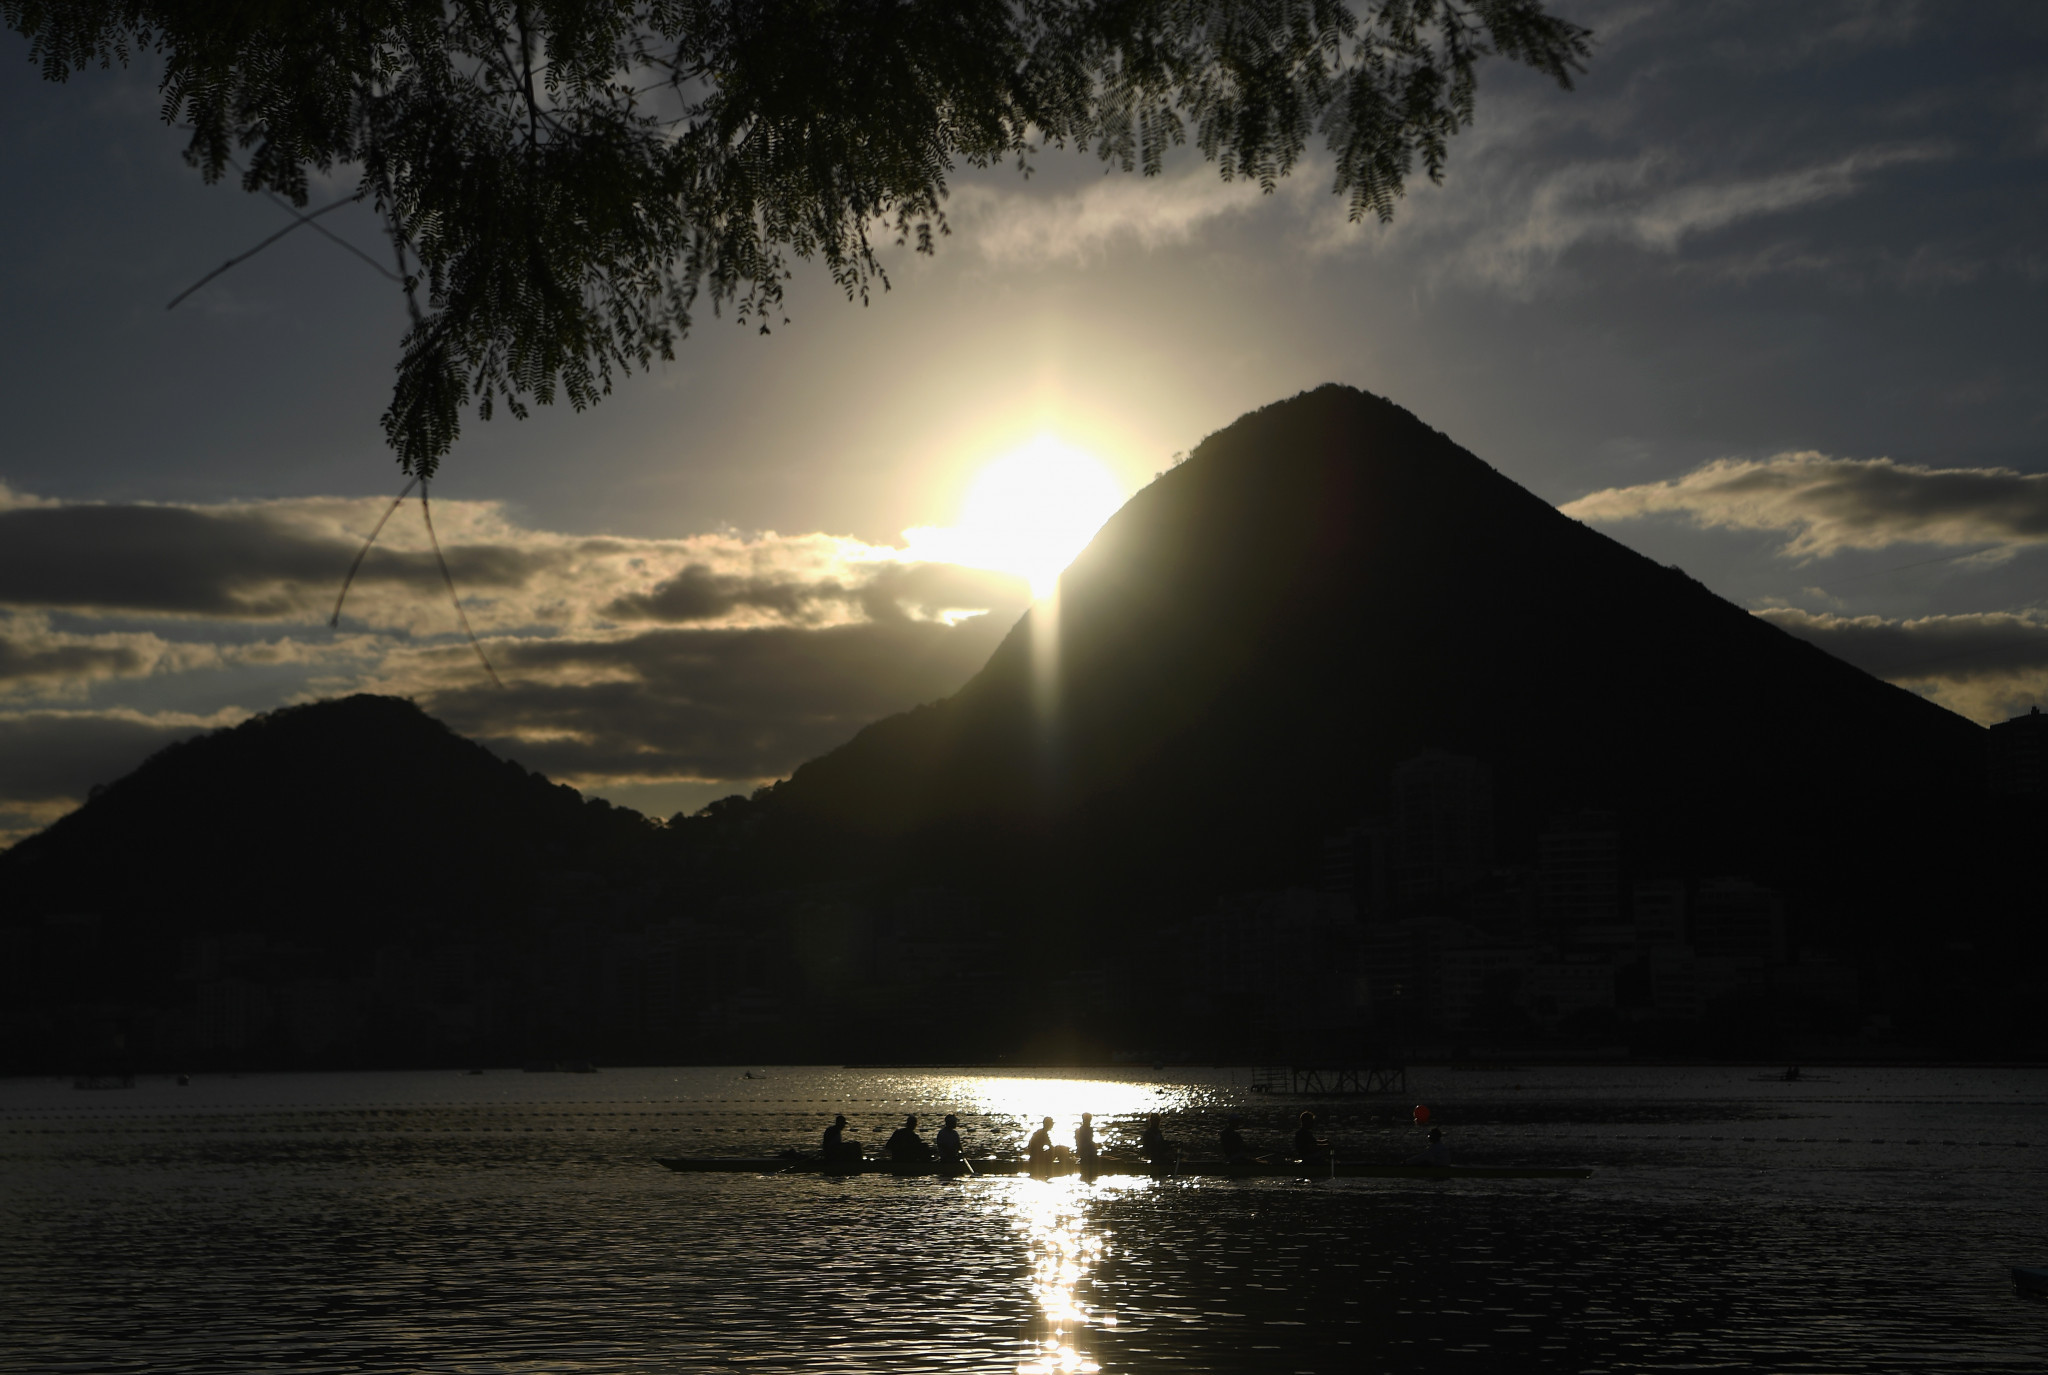 World Rowing postpones Americas Tokyo 2020 qualification regatta